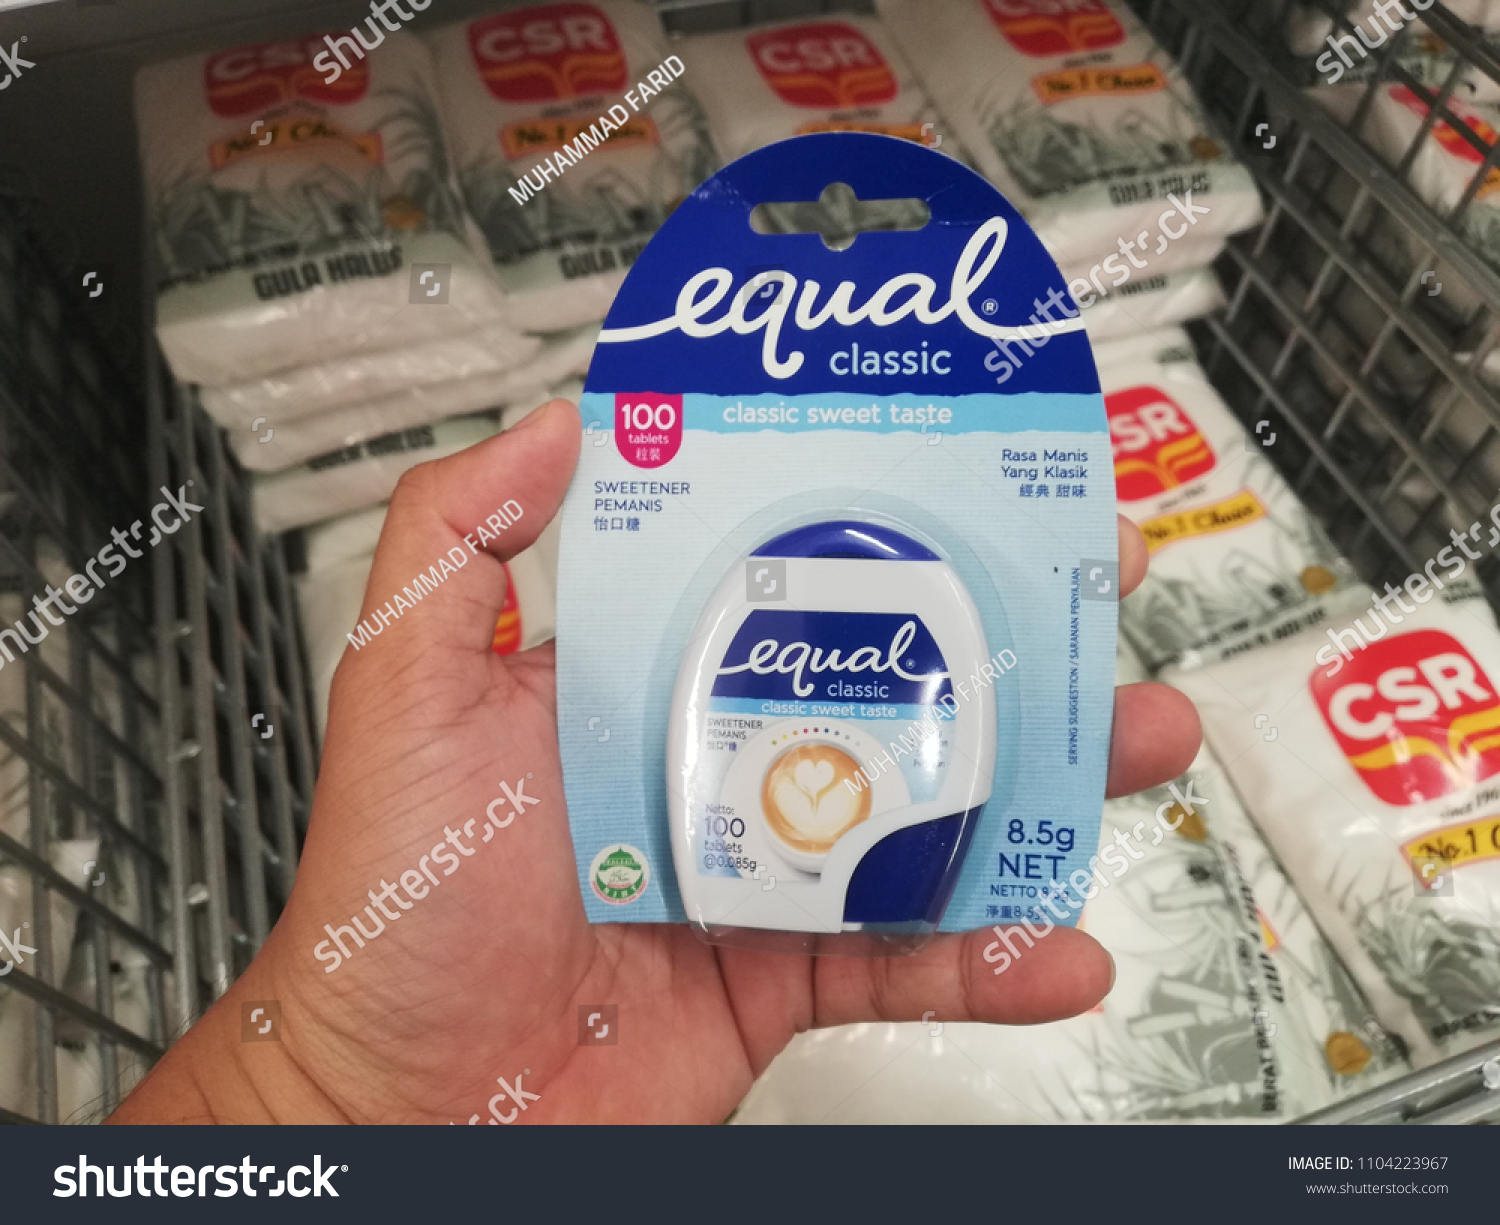 Equal Tablets Petaling Jaya Malaysia 3 June 2018 Stock Photo Edit Now 1104223967 Hand Holding Plastic Bottle Of Sugar From